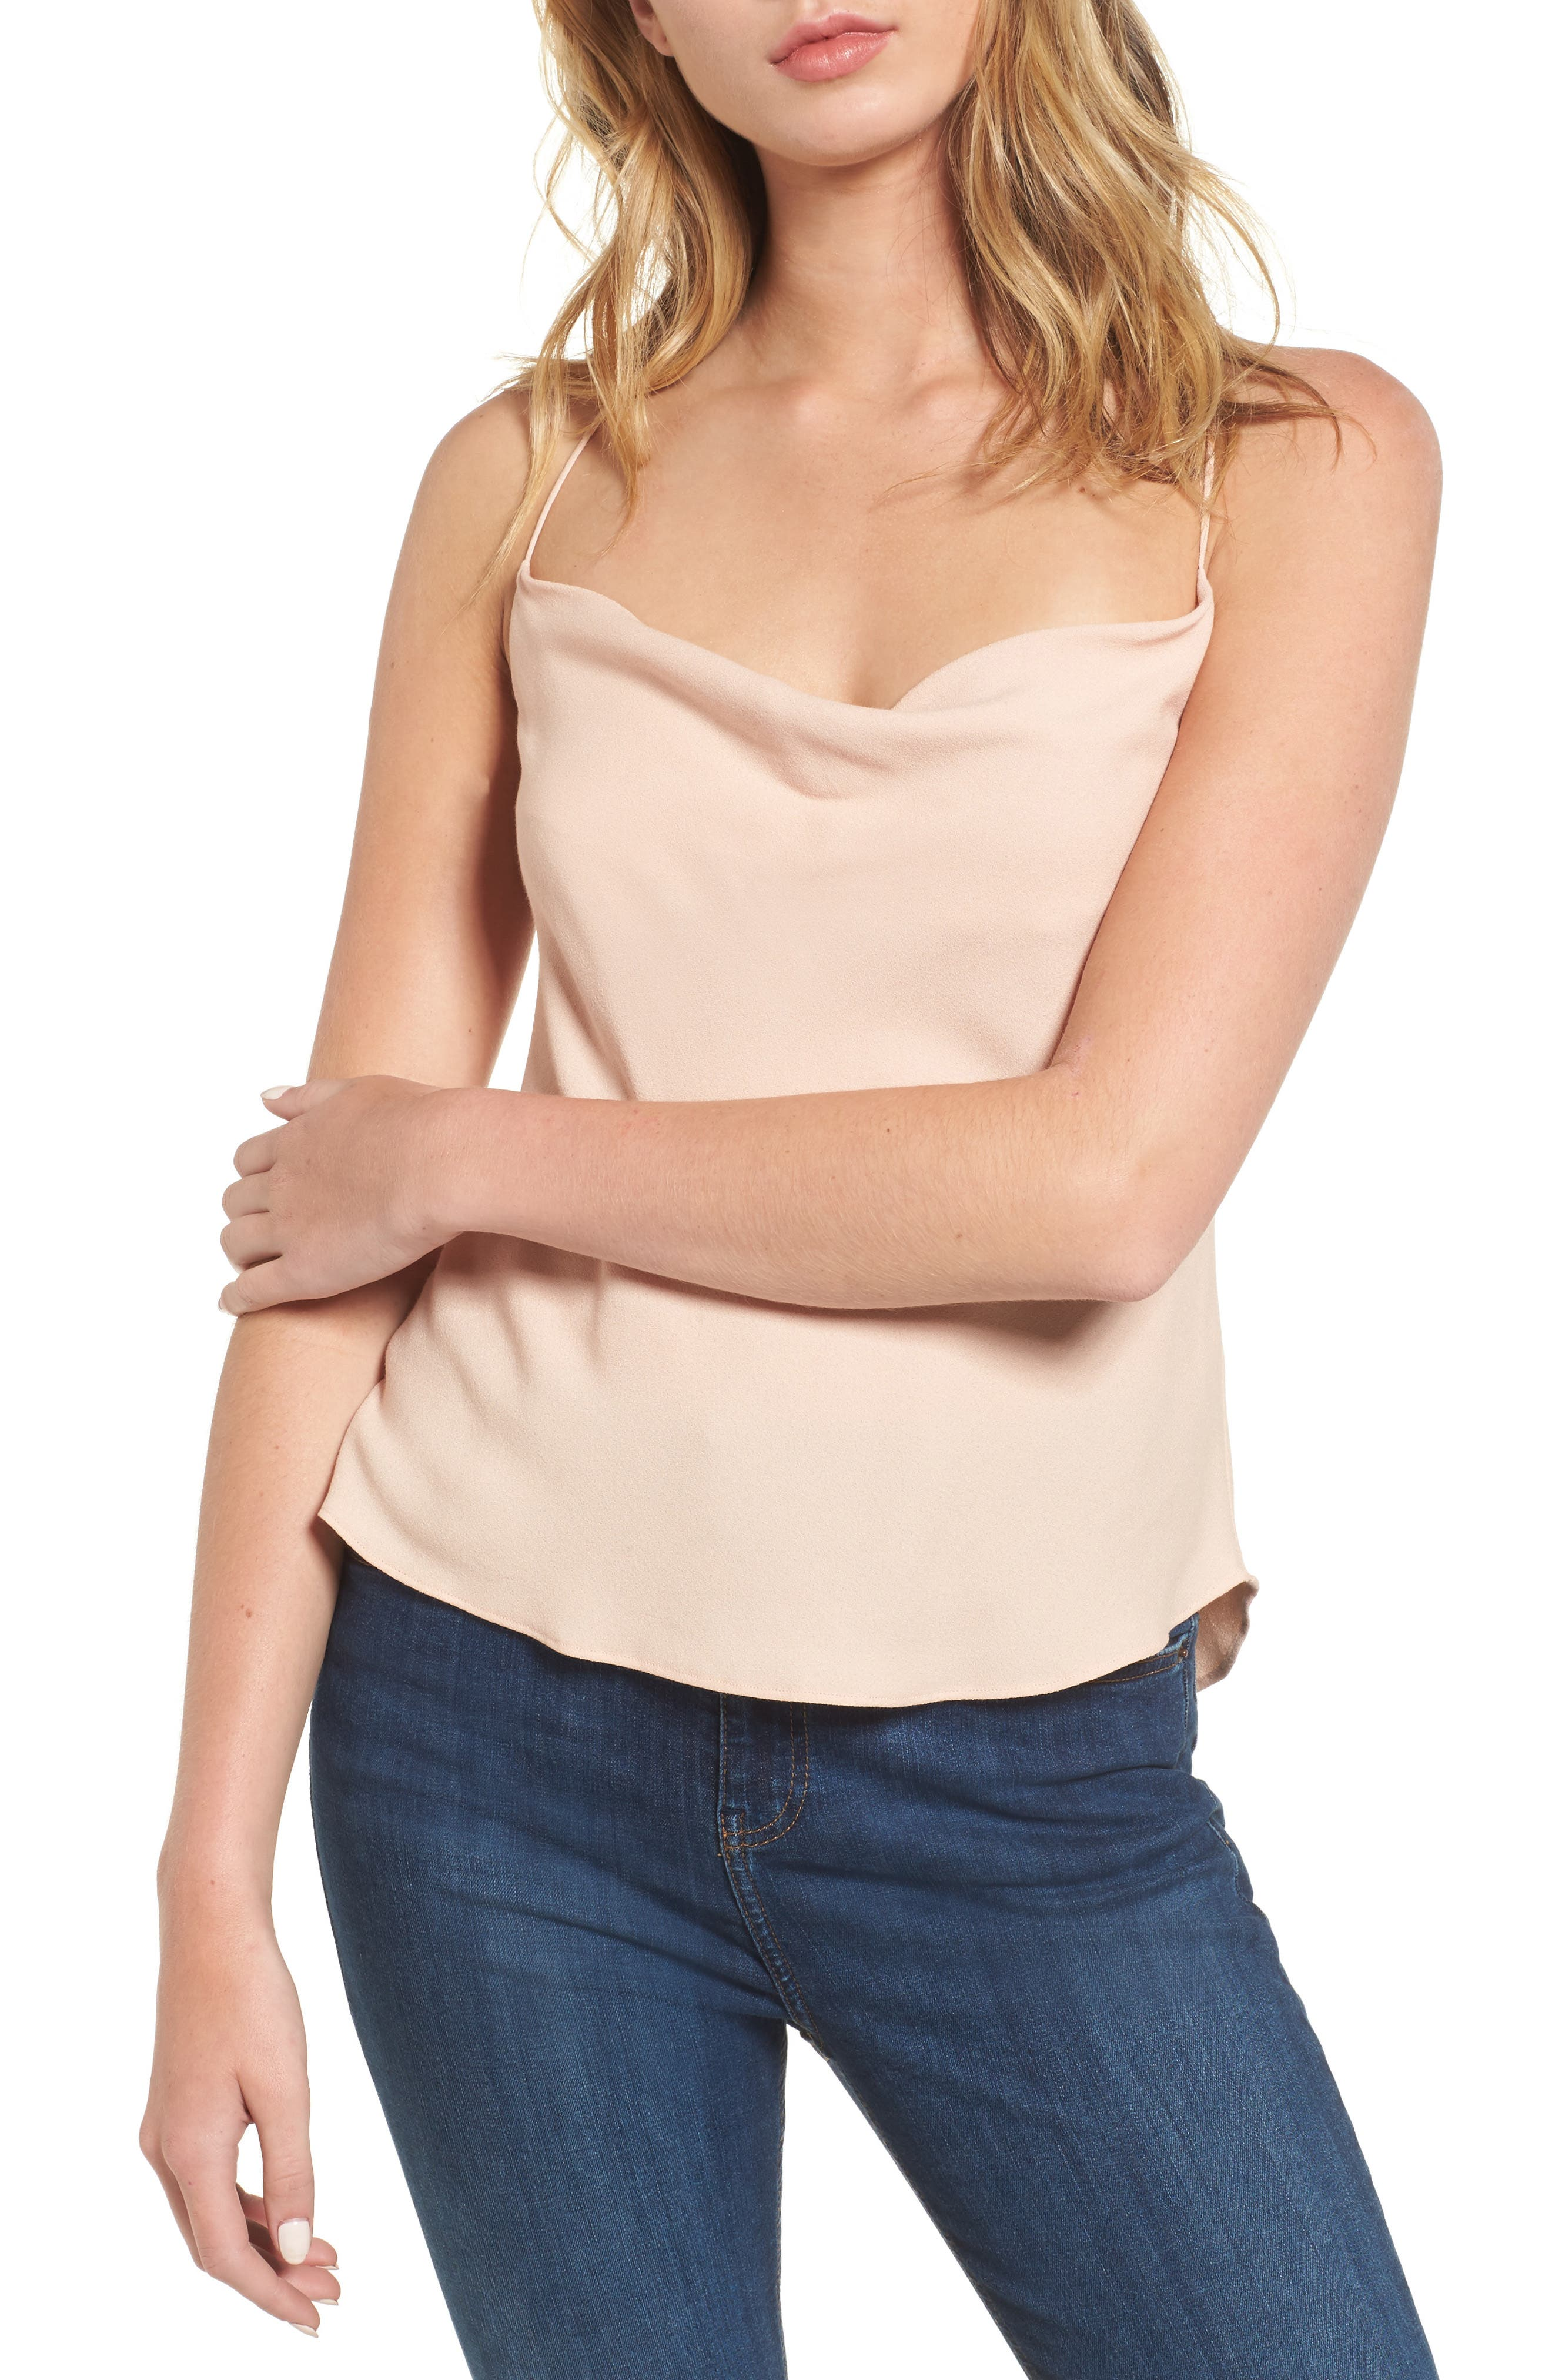 Main Image - AFRM Finn T-Back Camisole